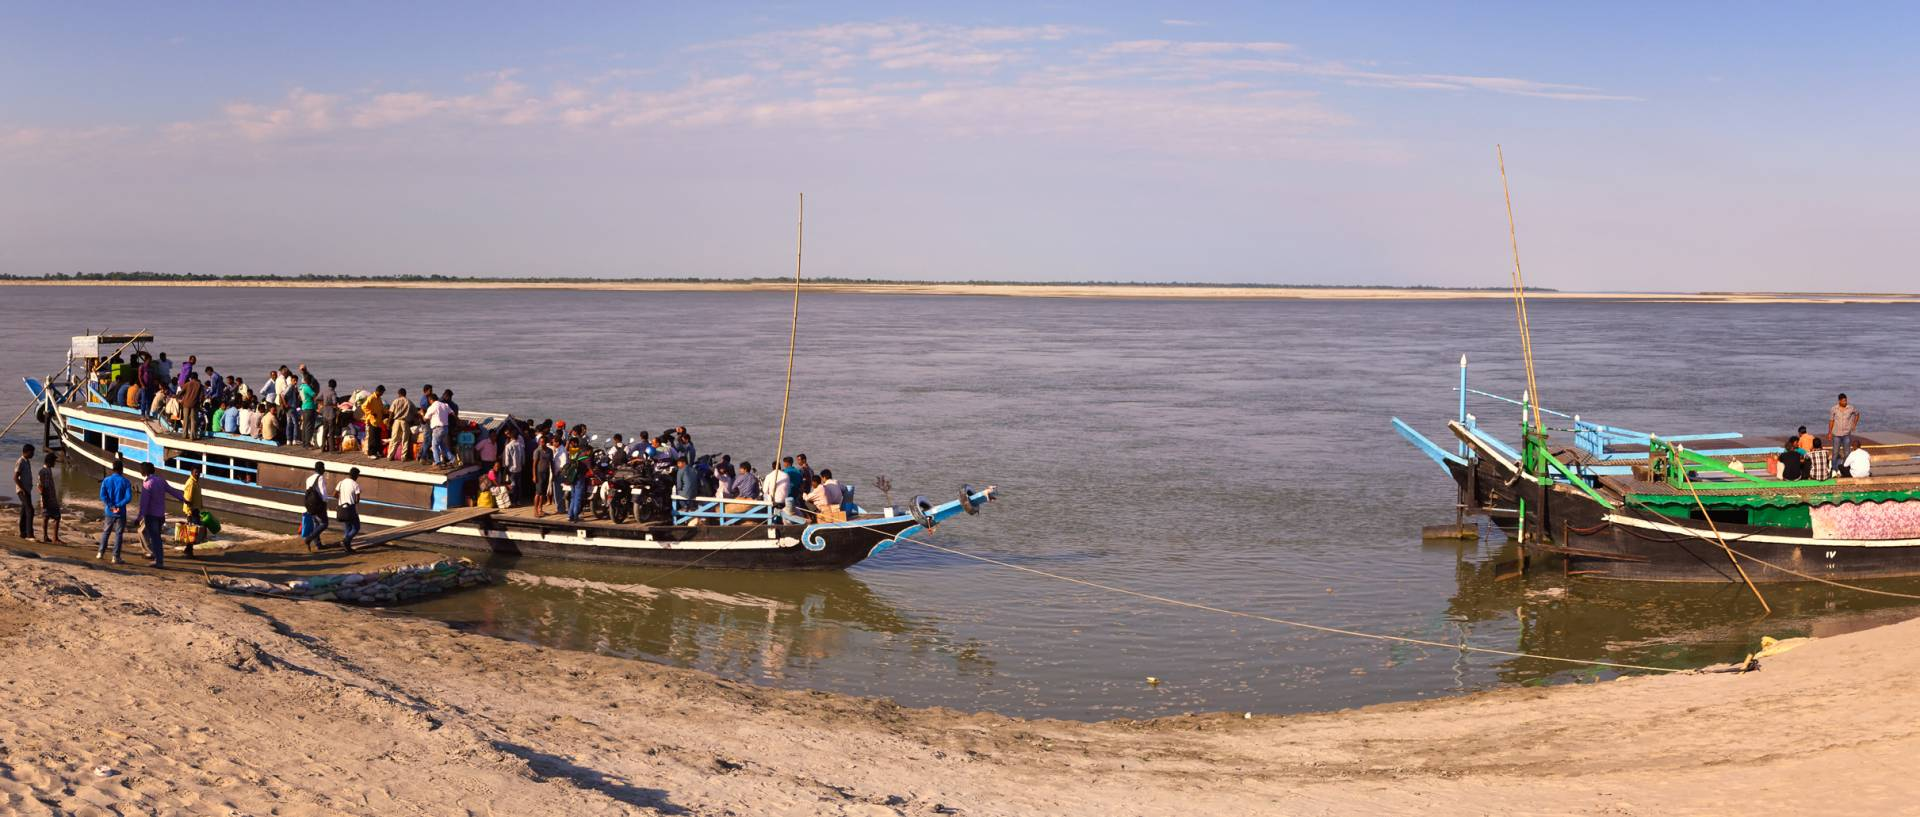 Taking the ferry to Majuli at Nimati ghat